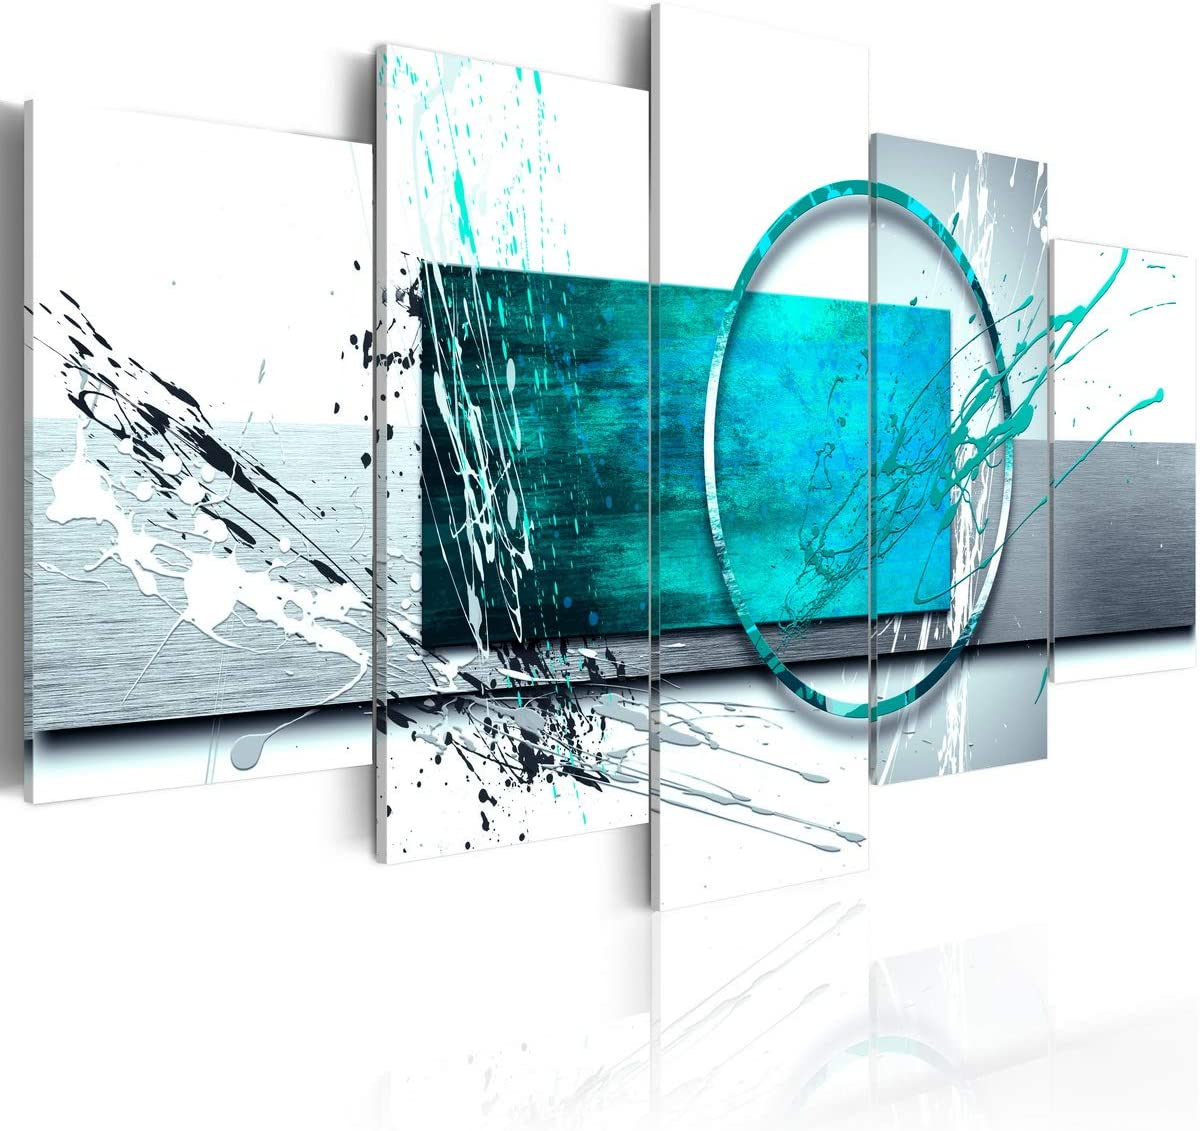 Large Turquoise Expression Abstract Wall Art 5 Panel Modern Teal Canvas Print Painting